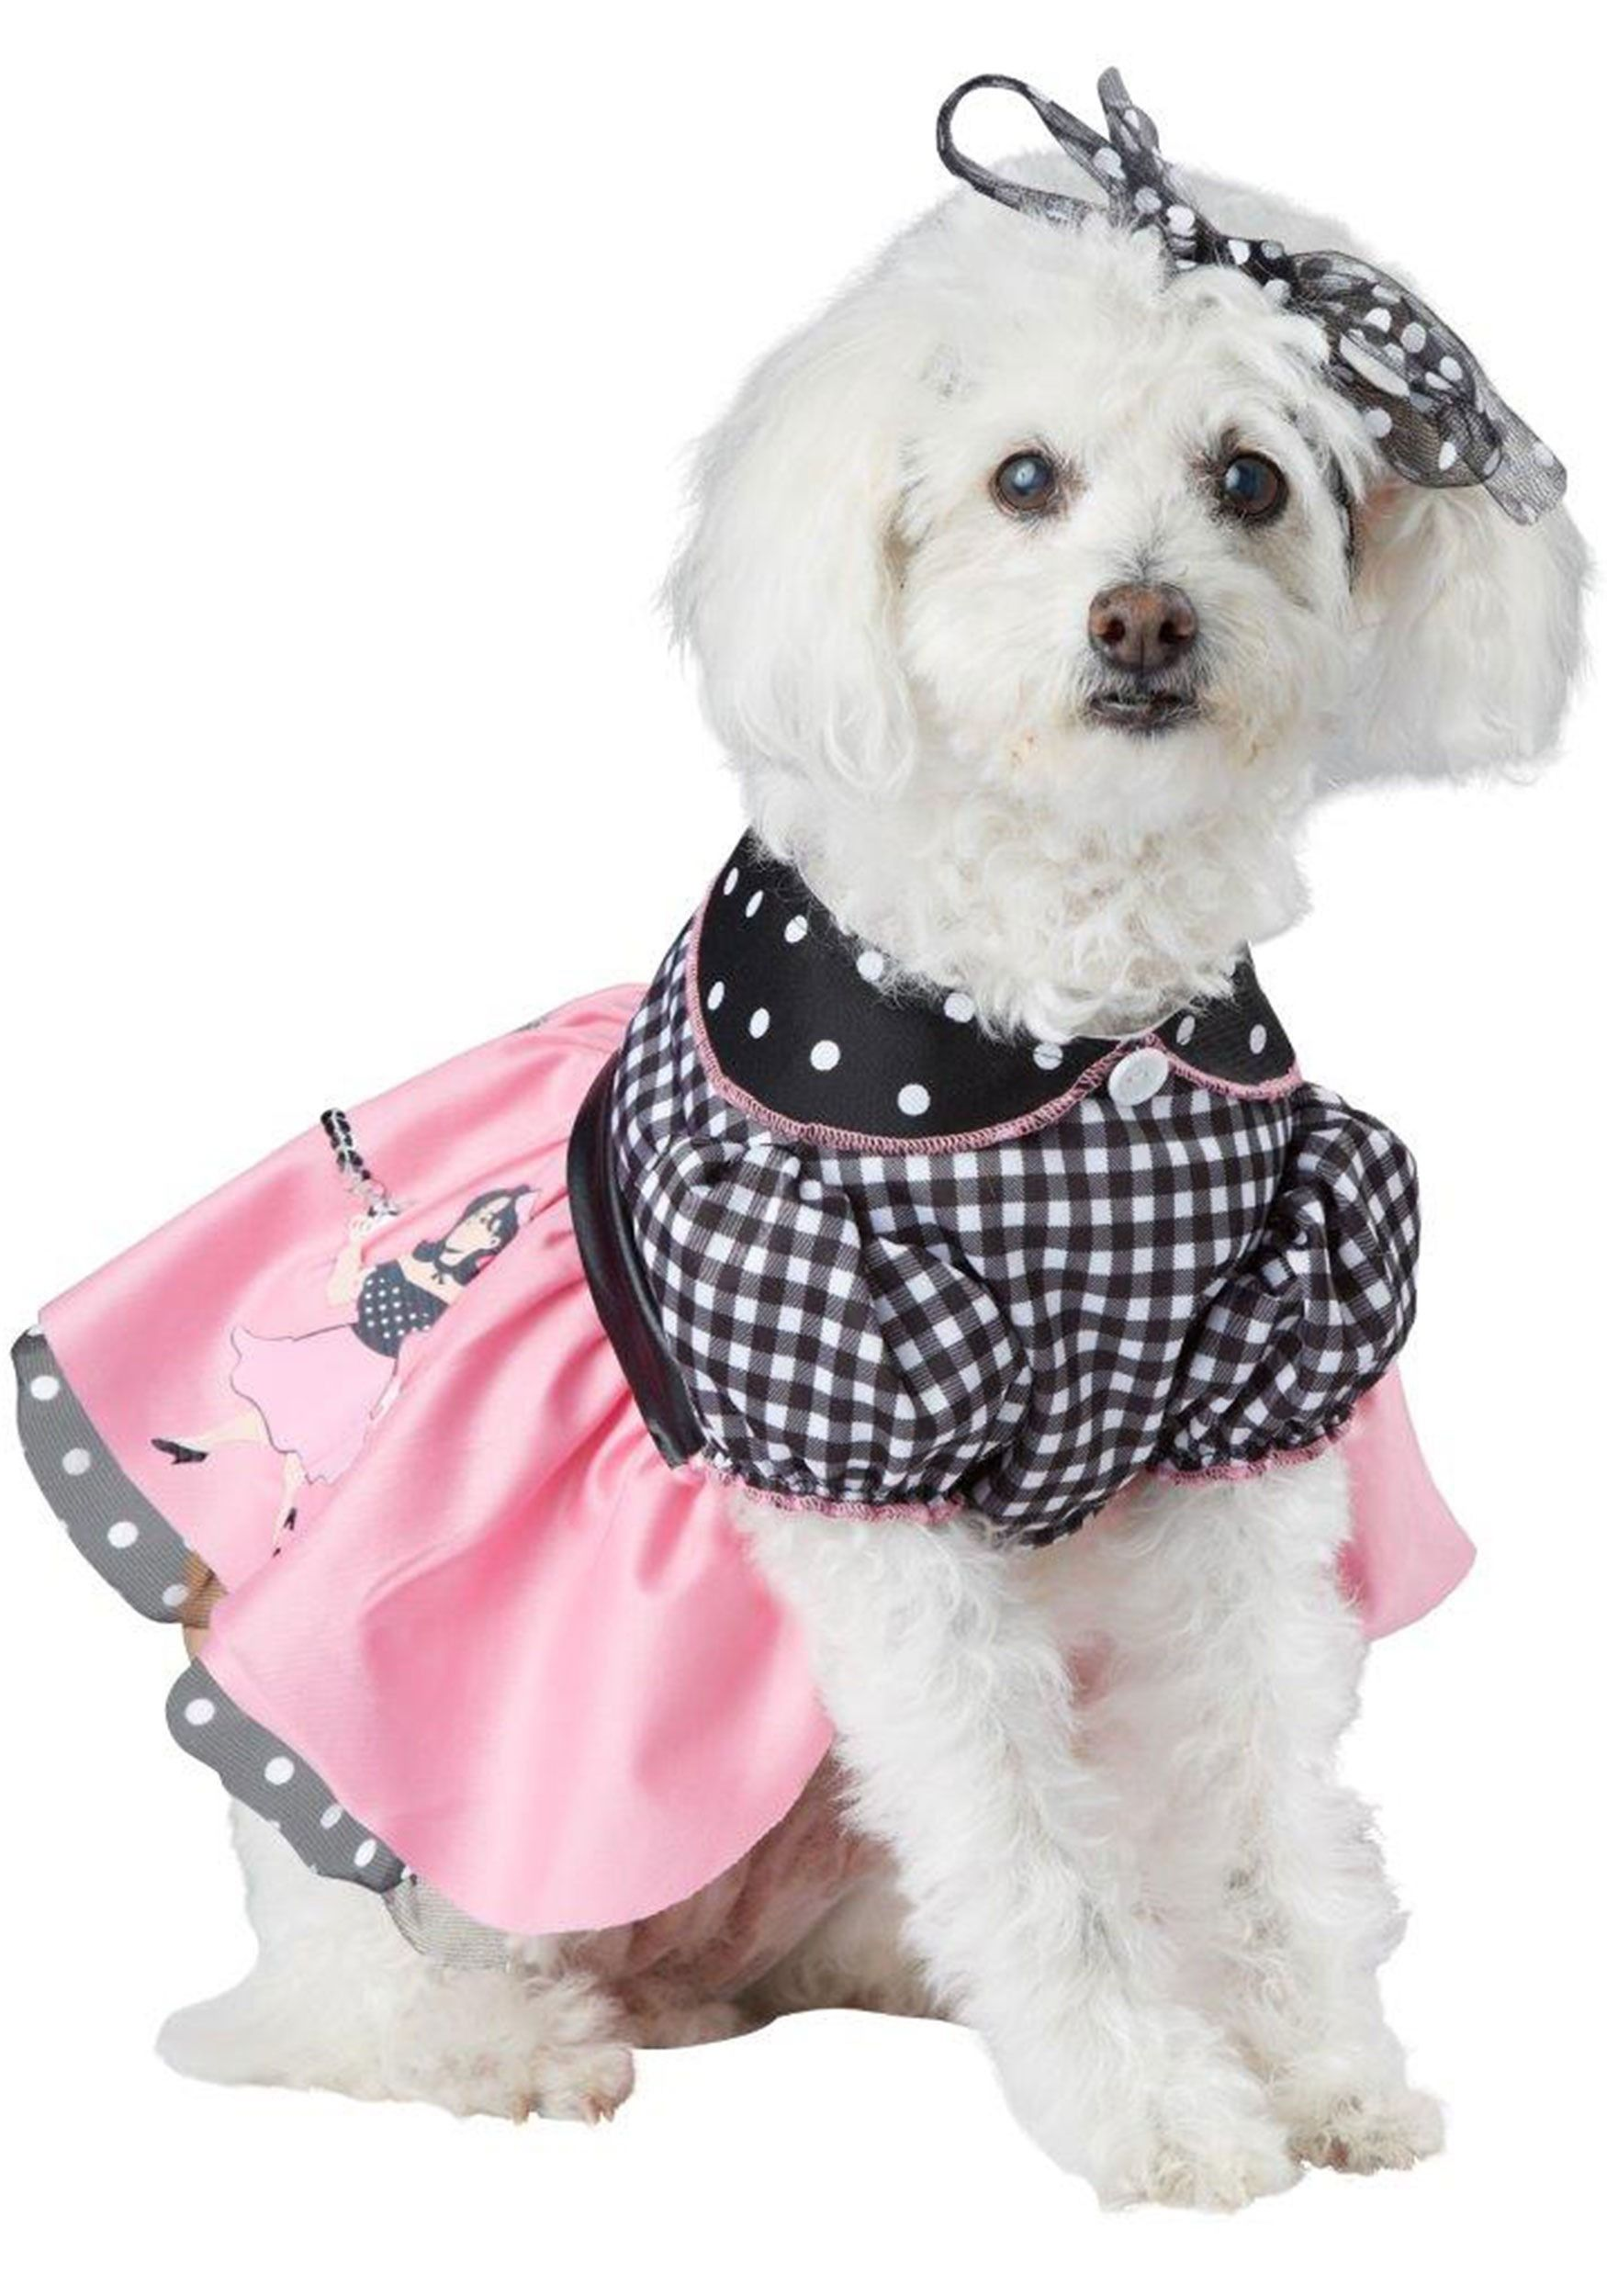 poodle skirt costume for dogs  sc 1 st  Country Living Magazine & 30 Cute Pet Costumes for Dogs u0026 Cats - Best Halloween Pet Costume Ideas